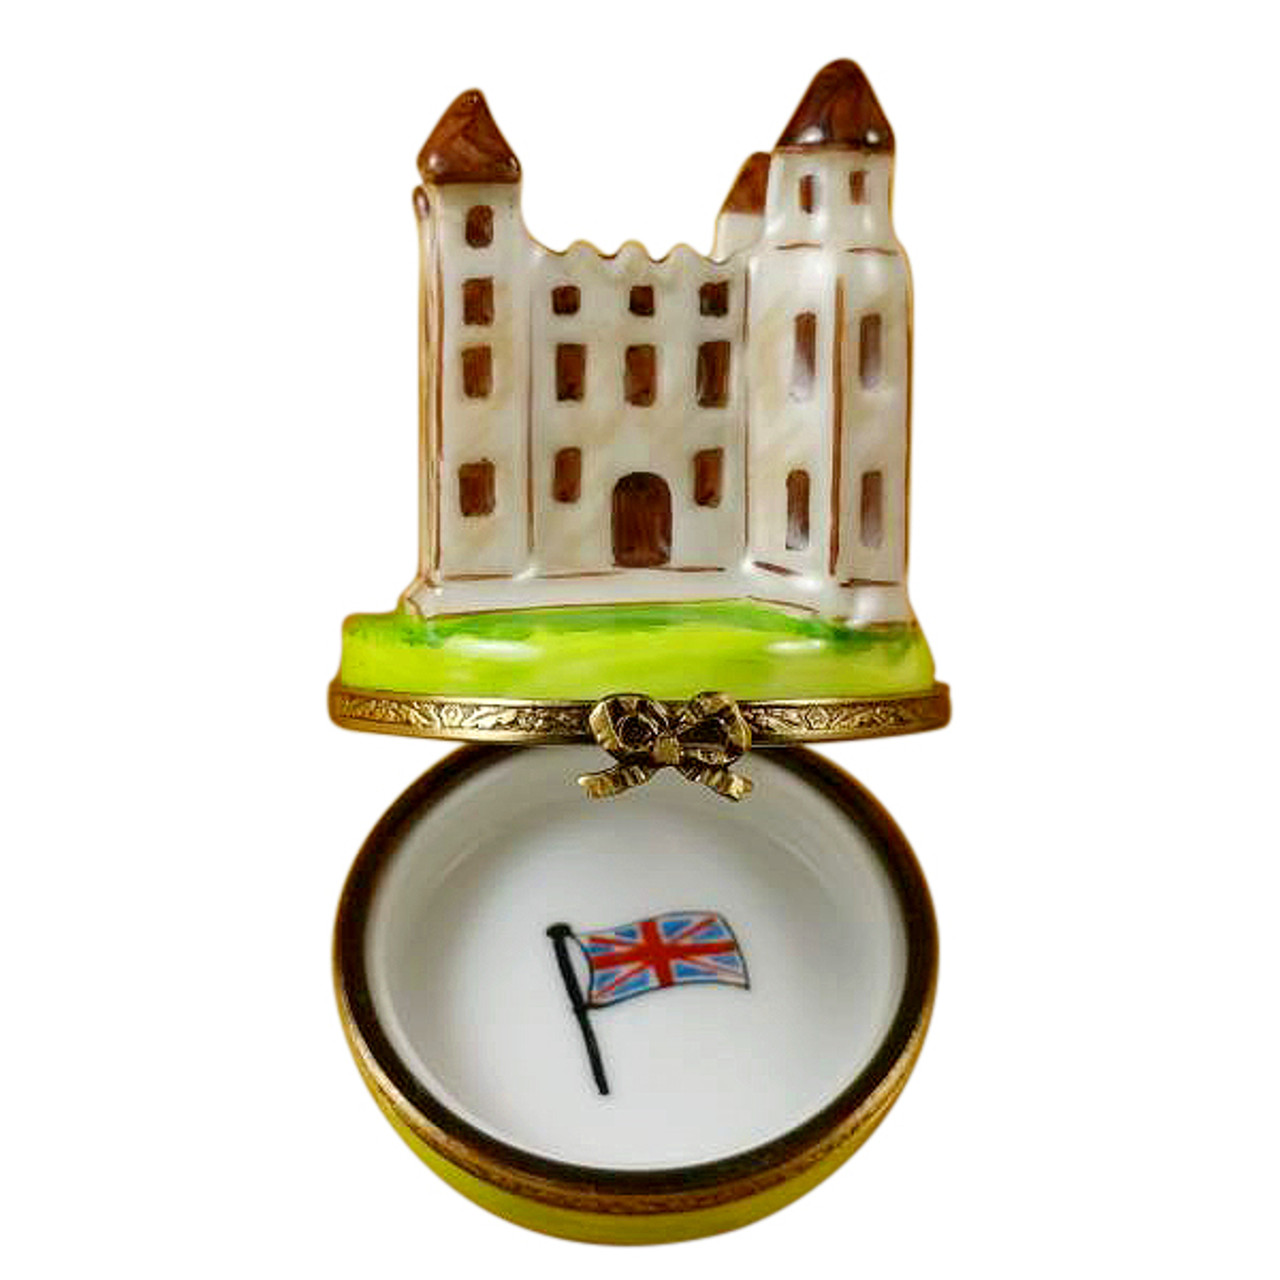 Limoges Imports Tower Of London Limoges Box